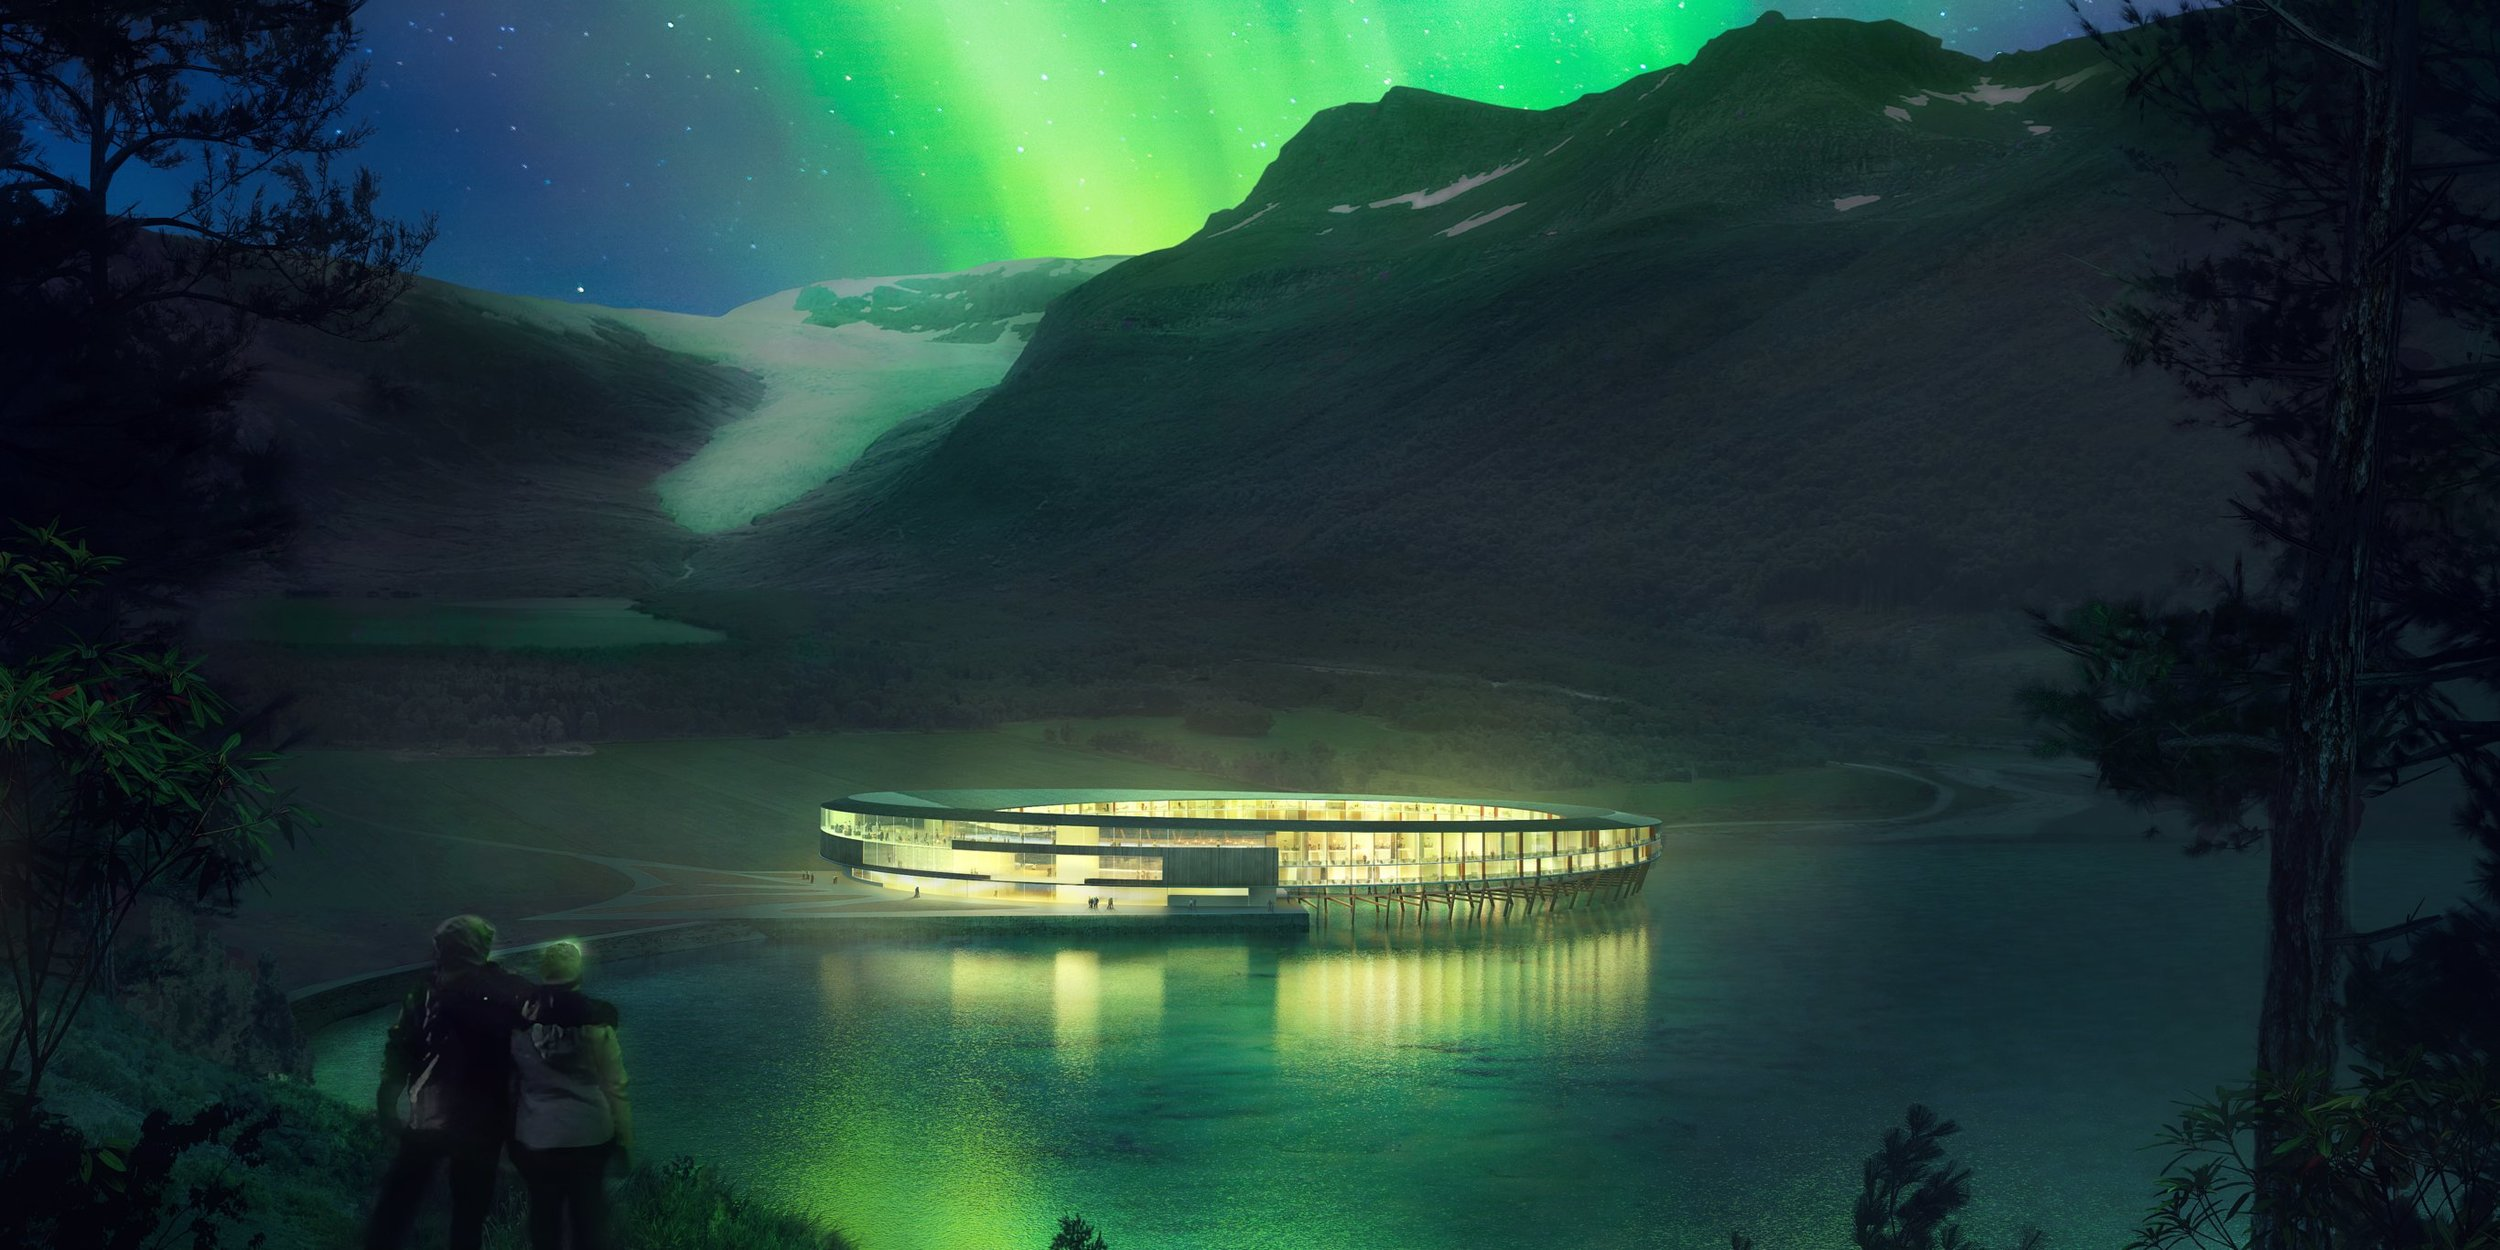 VIEW OF THE NORTHERN LIGHTS FROM THE SVART HOTEL, NORWAY